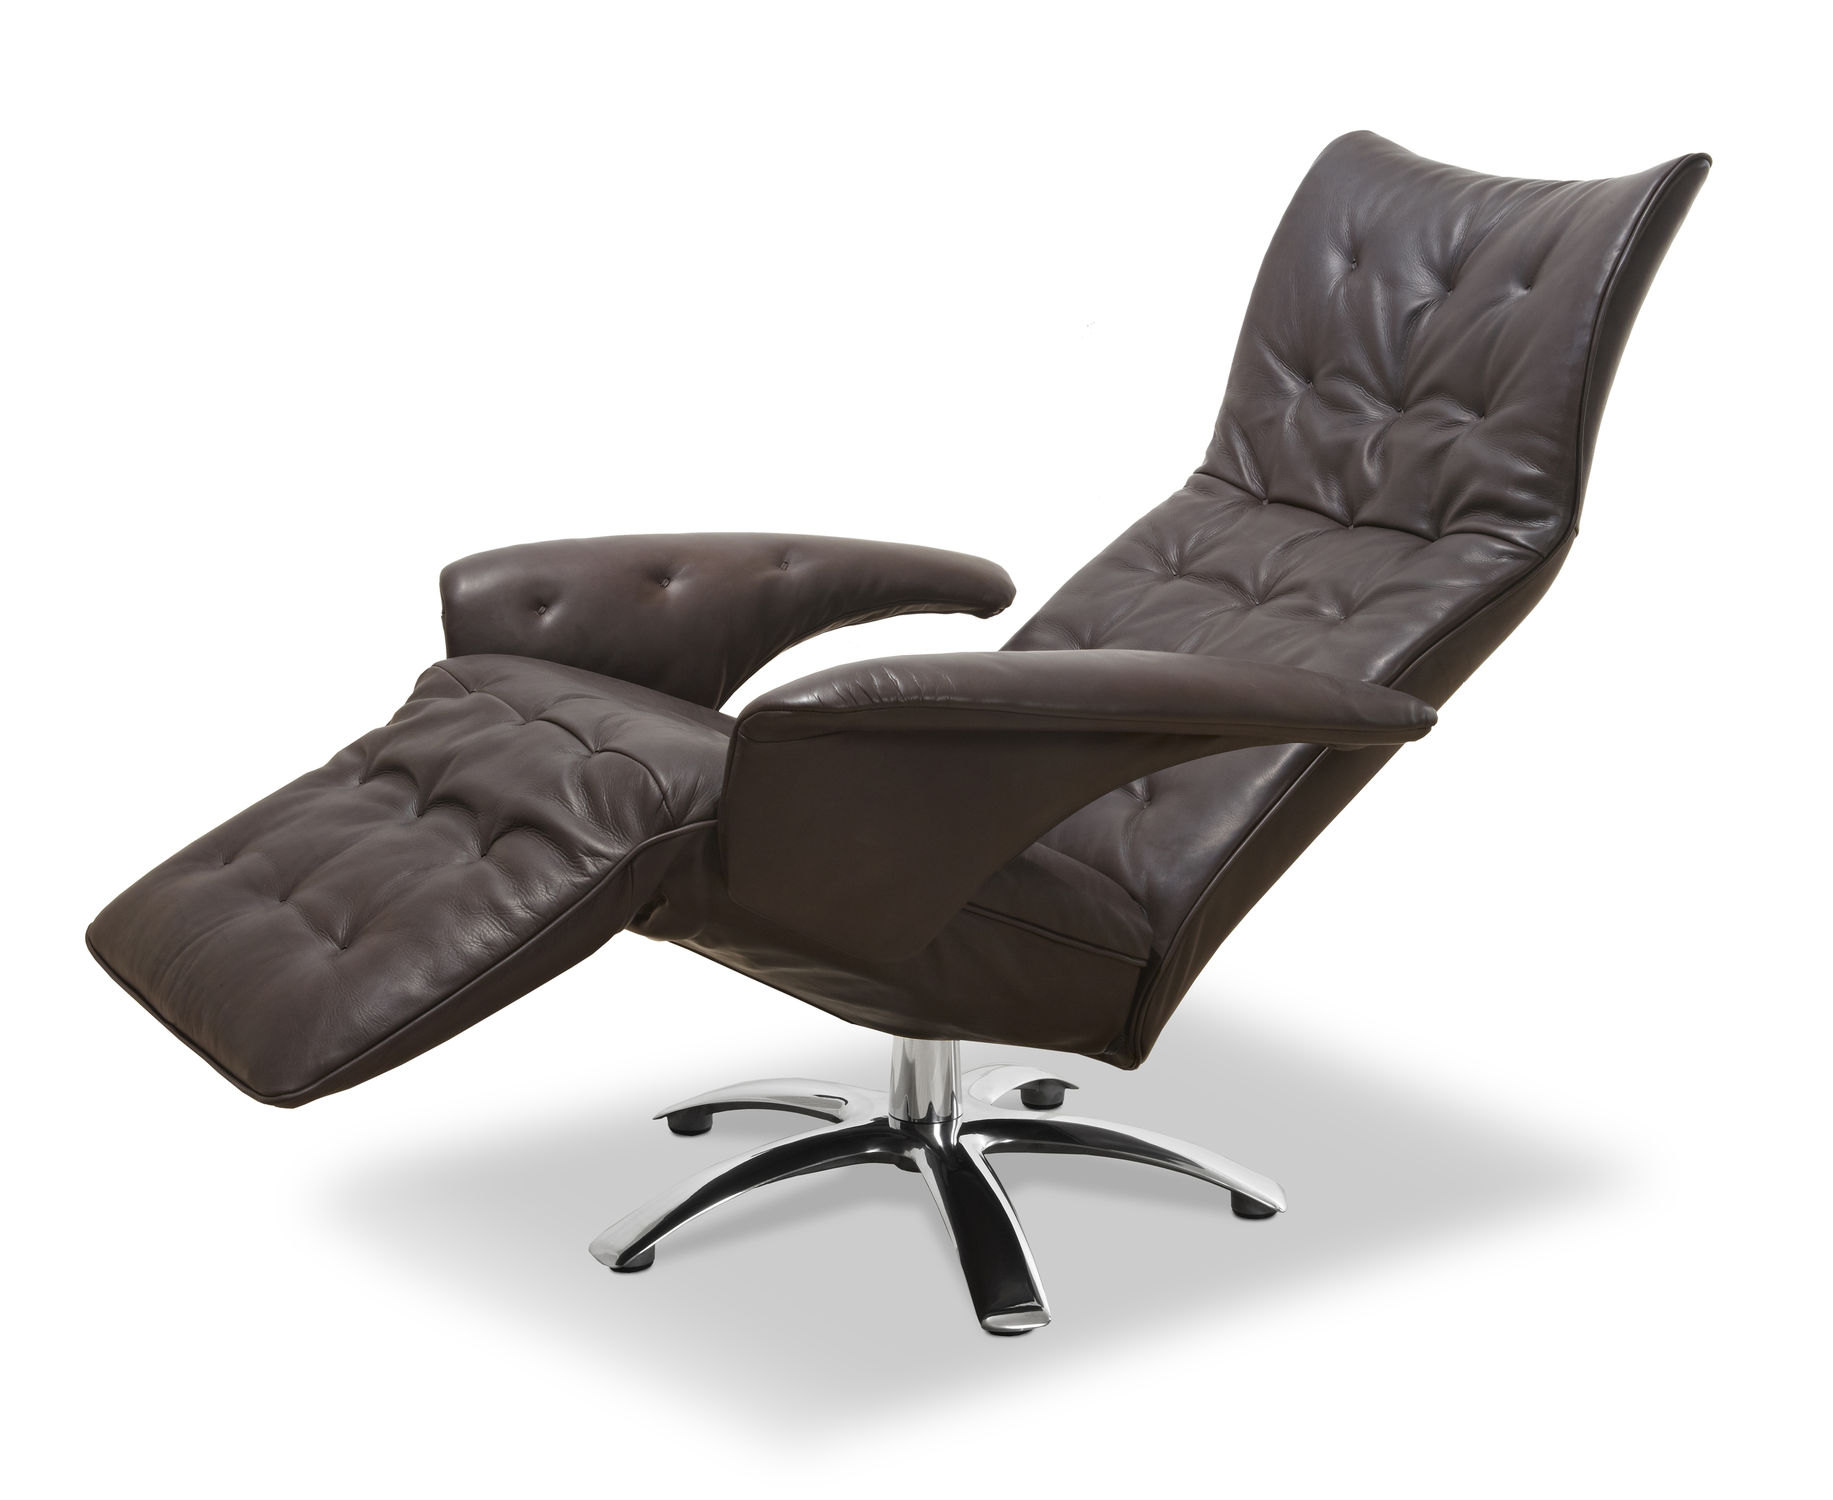 Recliners Contemporary Contemporary Armchair  Fabric  Leather  With Headrest  Square